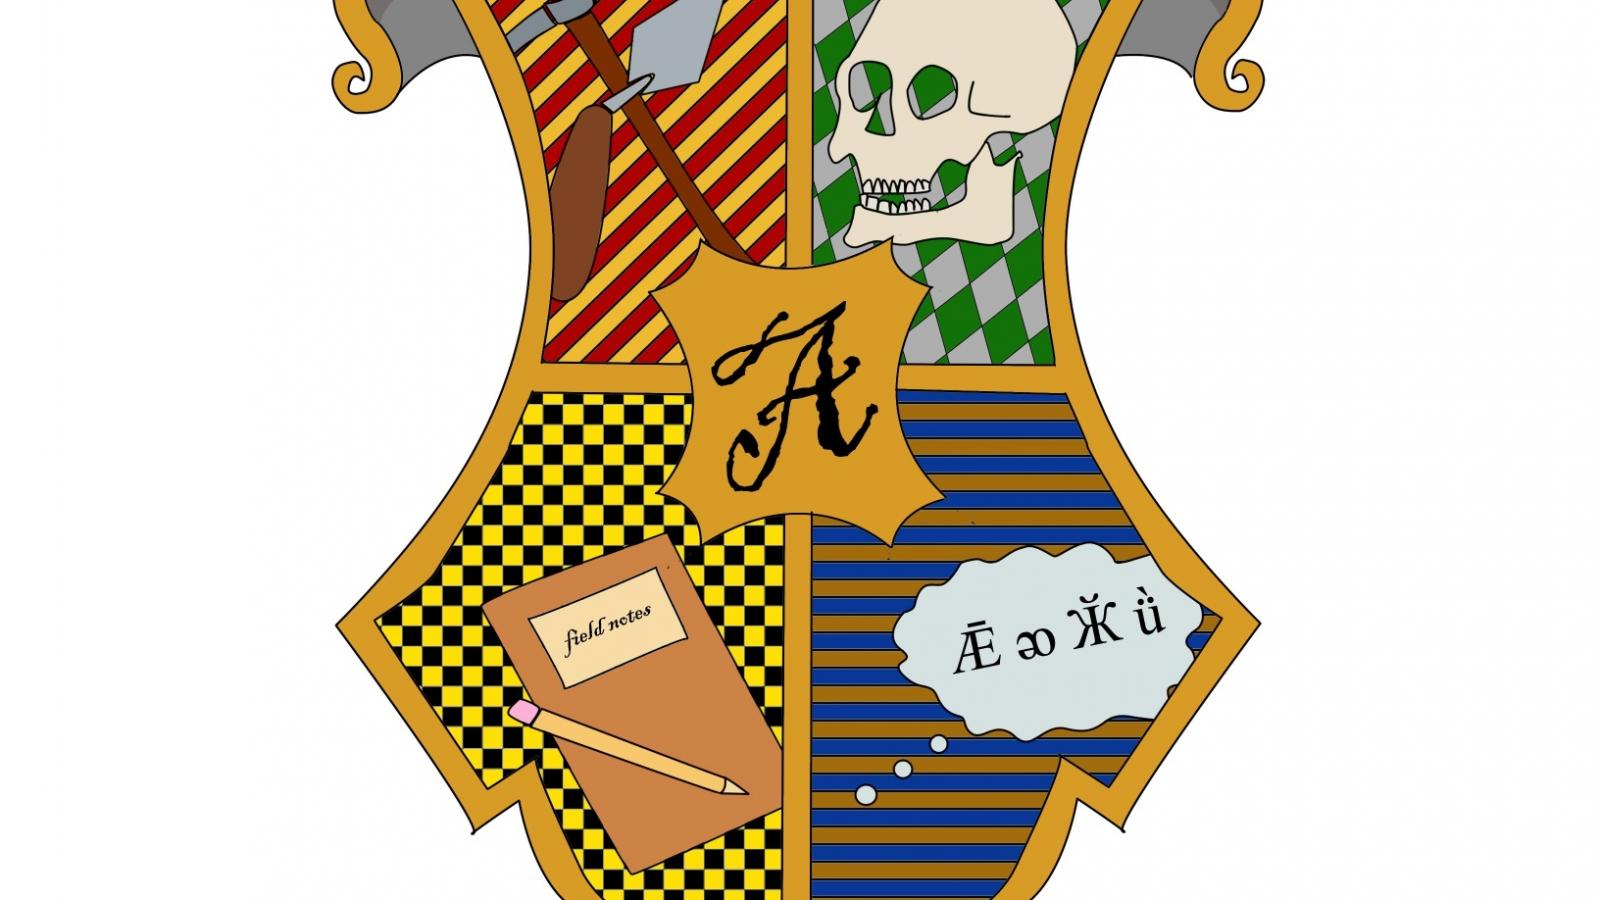 Hogwarts Anthropology Crest Image by Emma Lagan